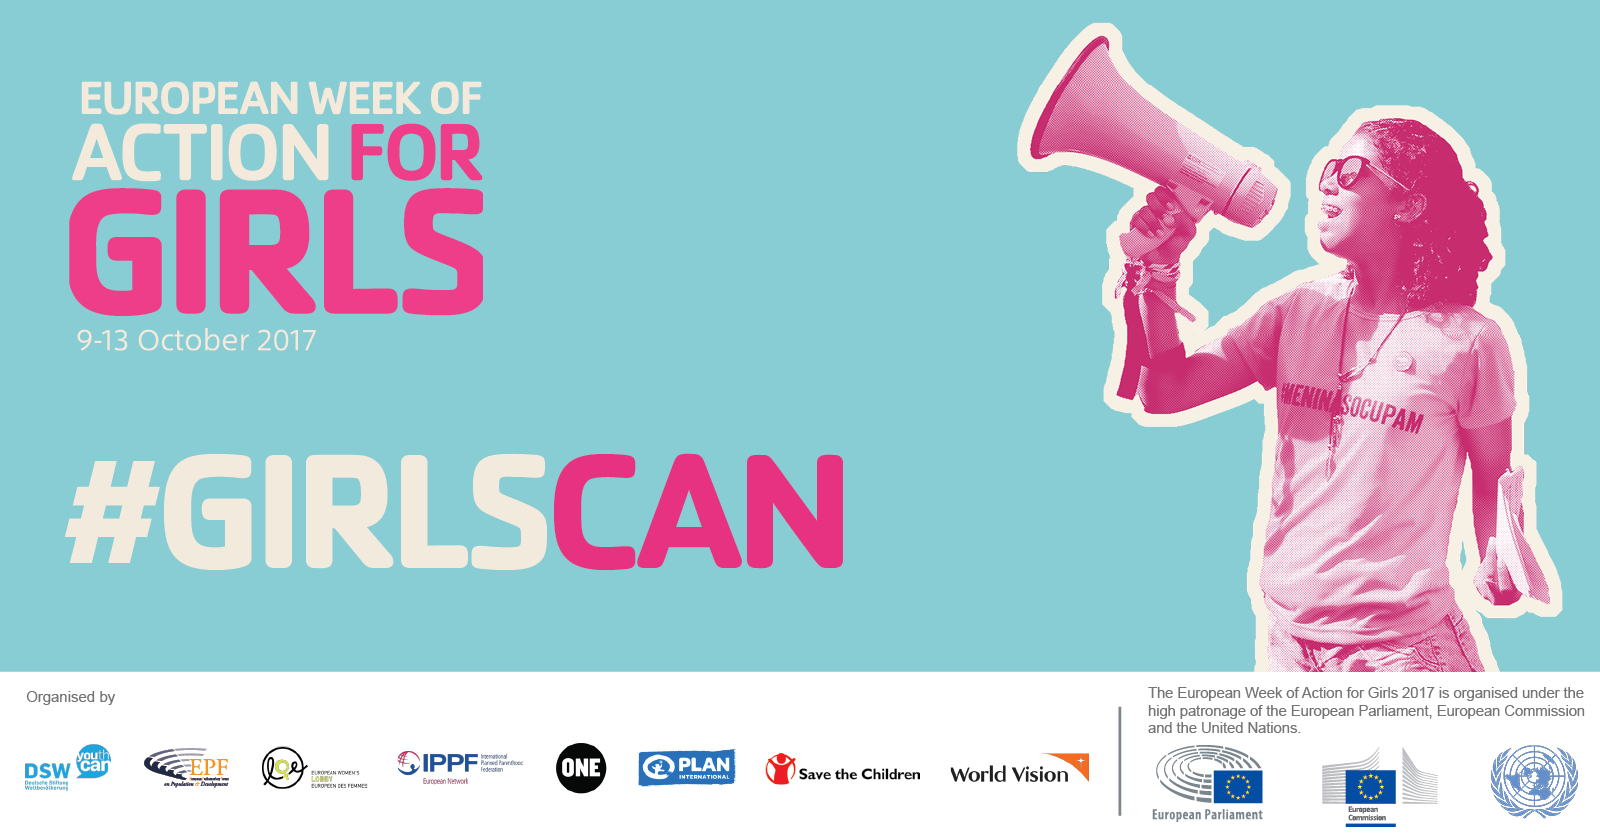 [Image: European Week of Action for Girls: Girls can thrive, inspire, succeed!]